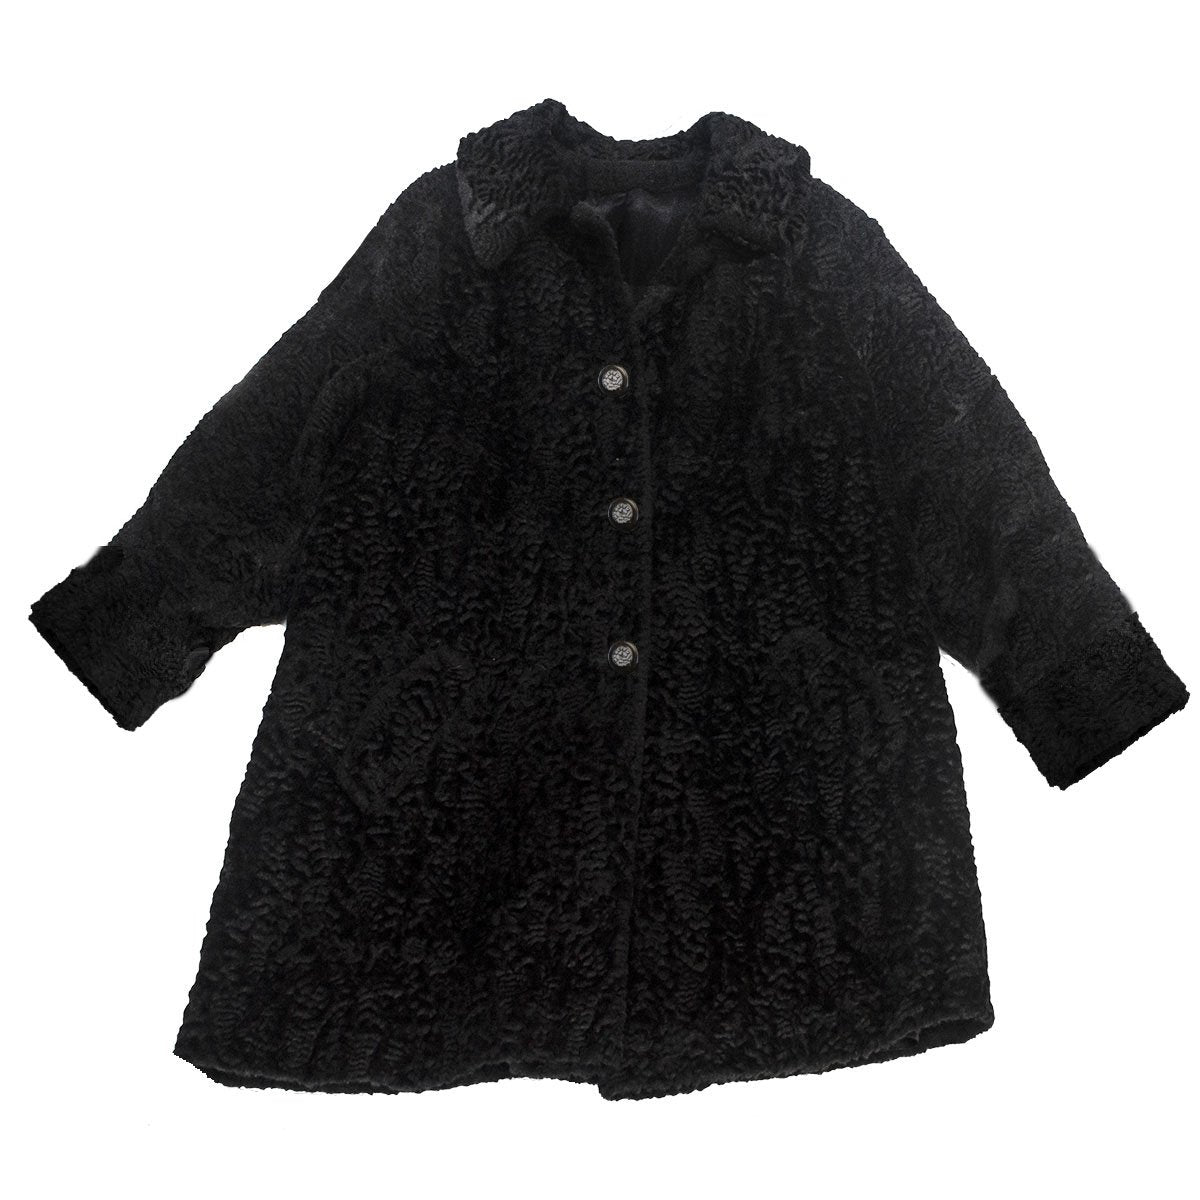 Vintage 60s Black Persian Lamb Car Coat